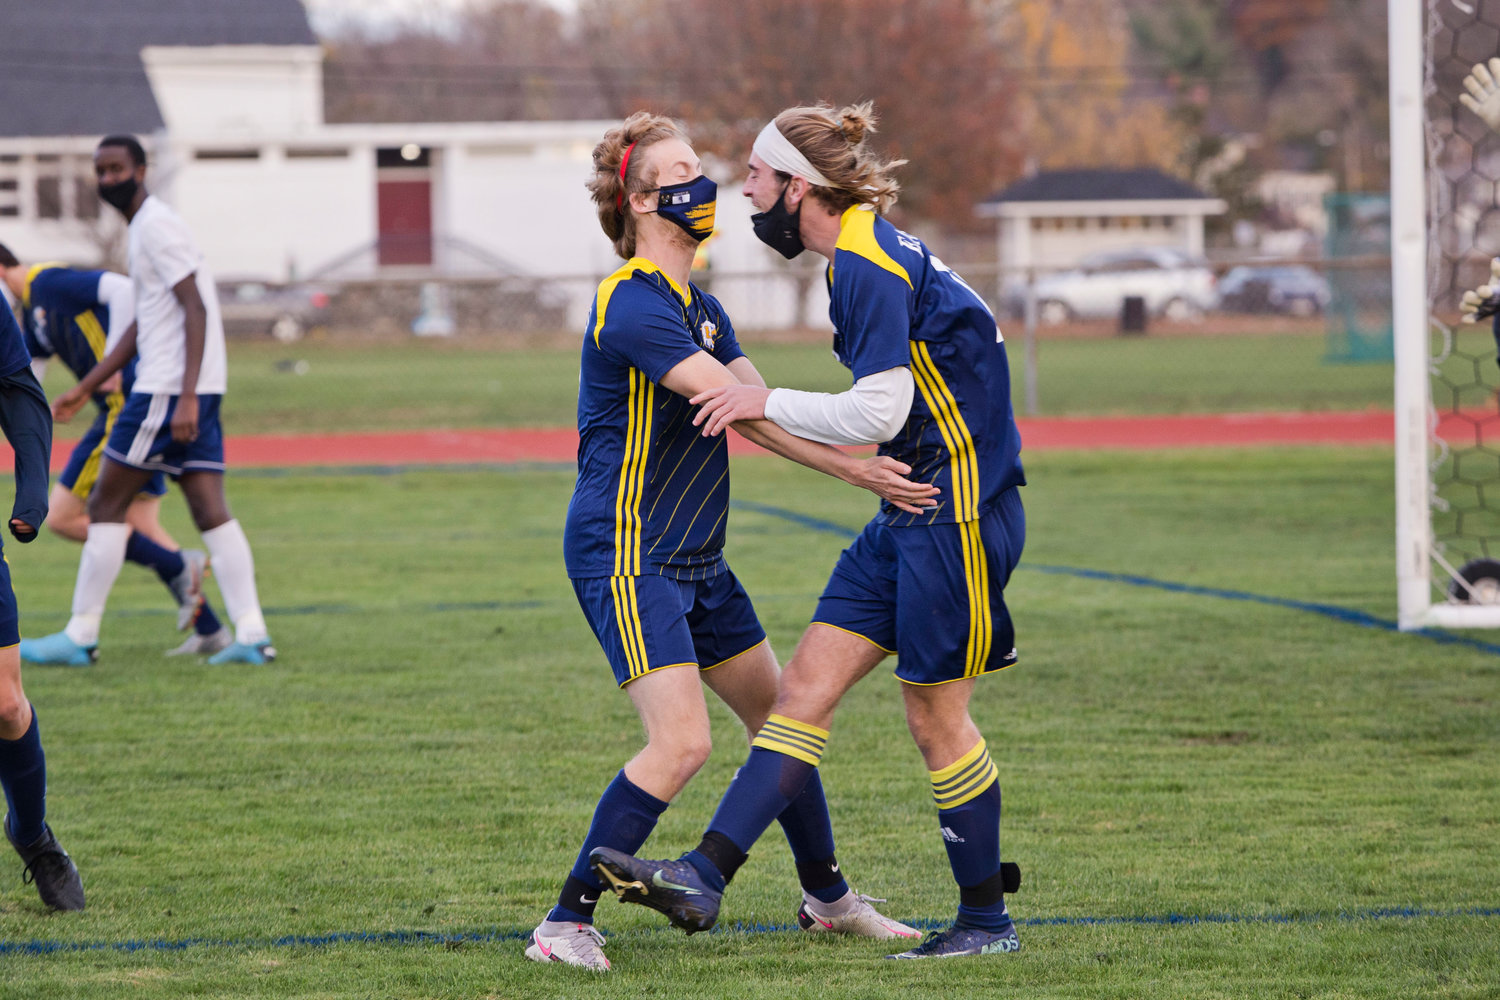 Barrington's Jackson Bennett (right), shown celebrating a goal with a teammate this season, was one of the few defenders to be selected to the United Soccer Coaches Association's All American team.